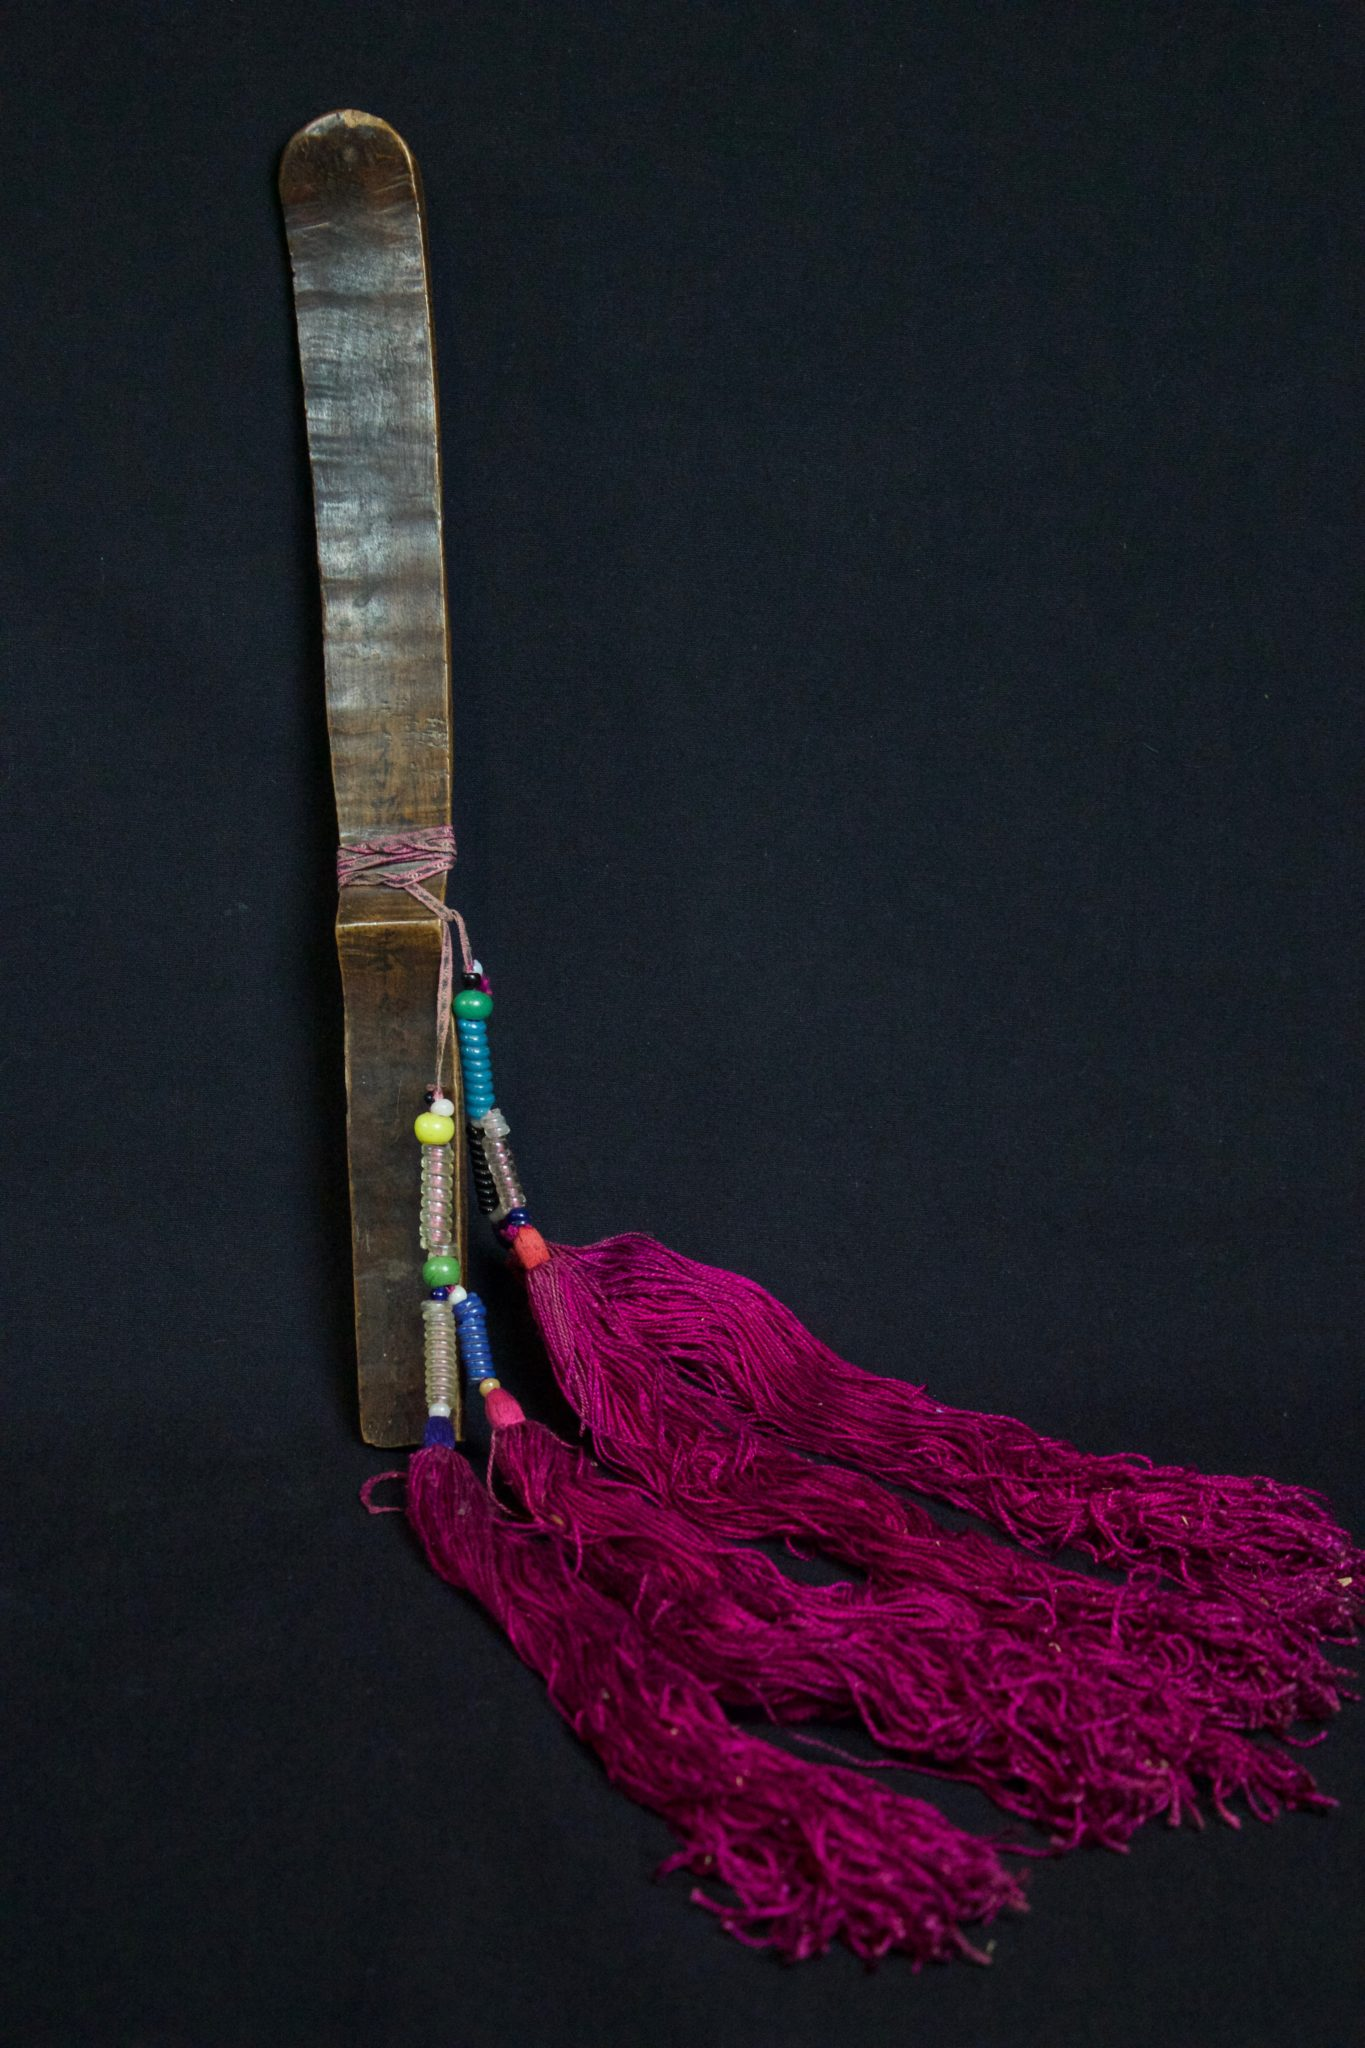 "Shaman's Court Tablet or Wand, Vietnam, Yao people, Mid to late 19th c, Wood, finely woven cotton band with glass beads. Potent tool used similarly to a Himalayan Phurba, to direct evil energy away and to summon and control spirits. Text characters are painted onto all sides. 13 ¼"" x 16 ½"" x ¾"", $650"